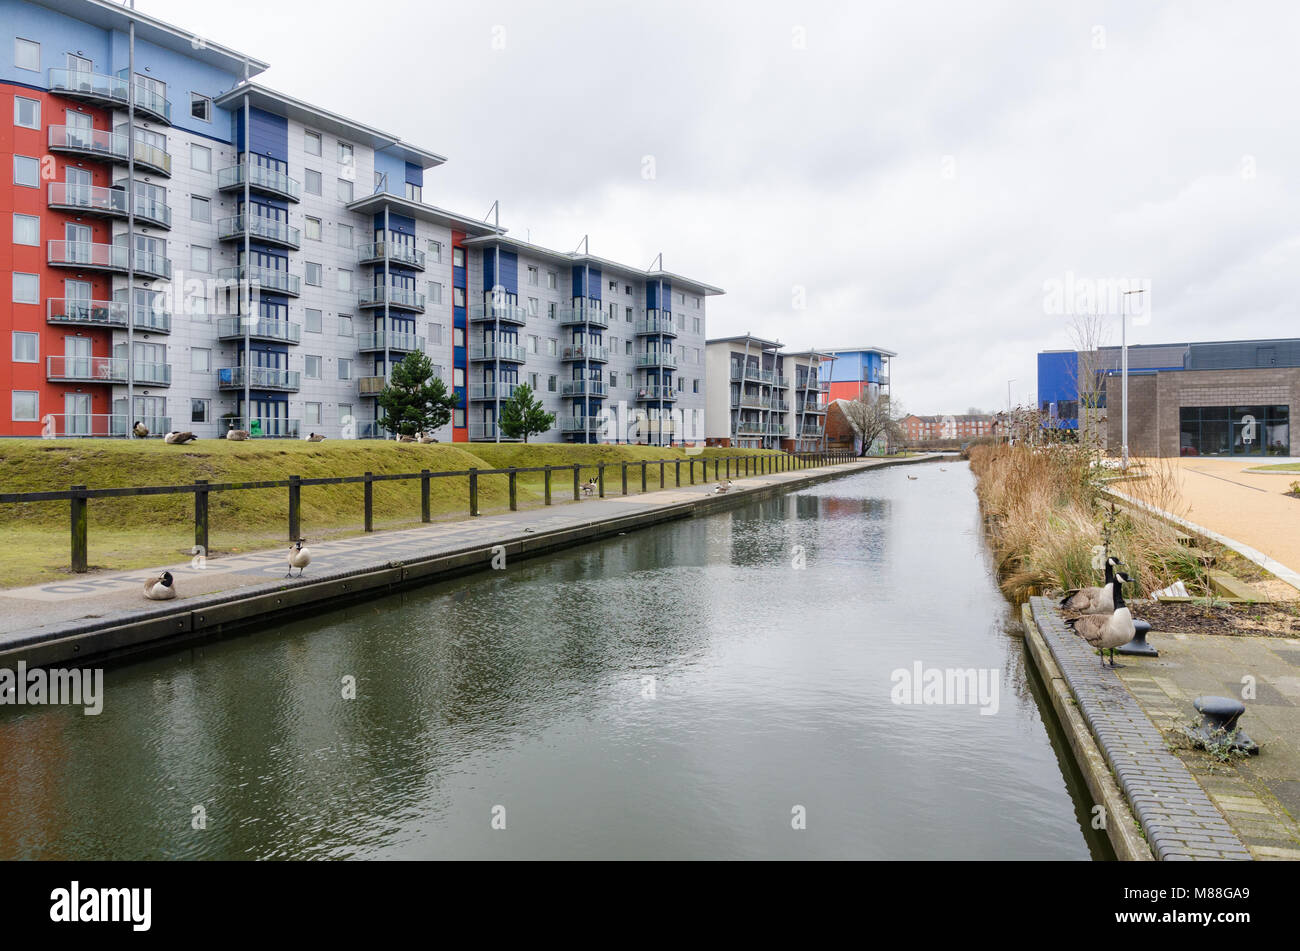 Modern canalside apartments in the West Midlands industrial town of Walsall - Stock Image